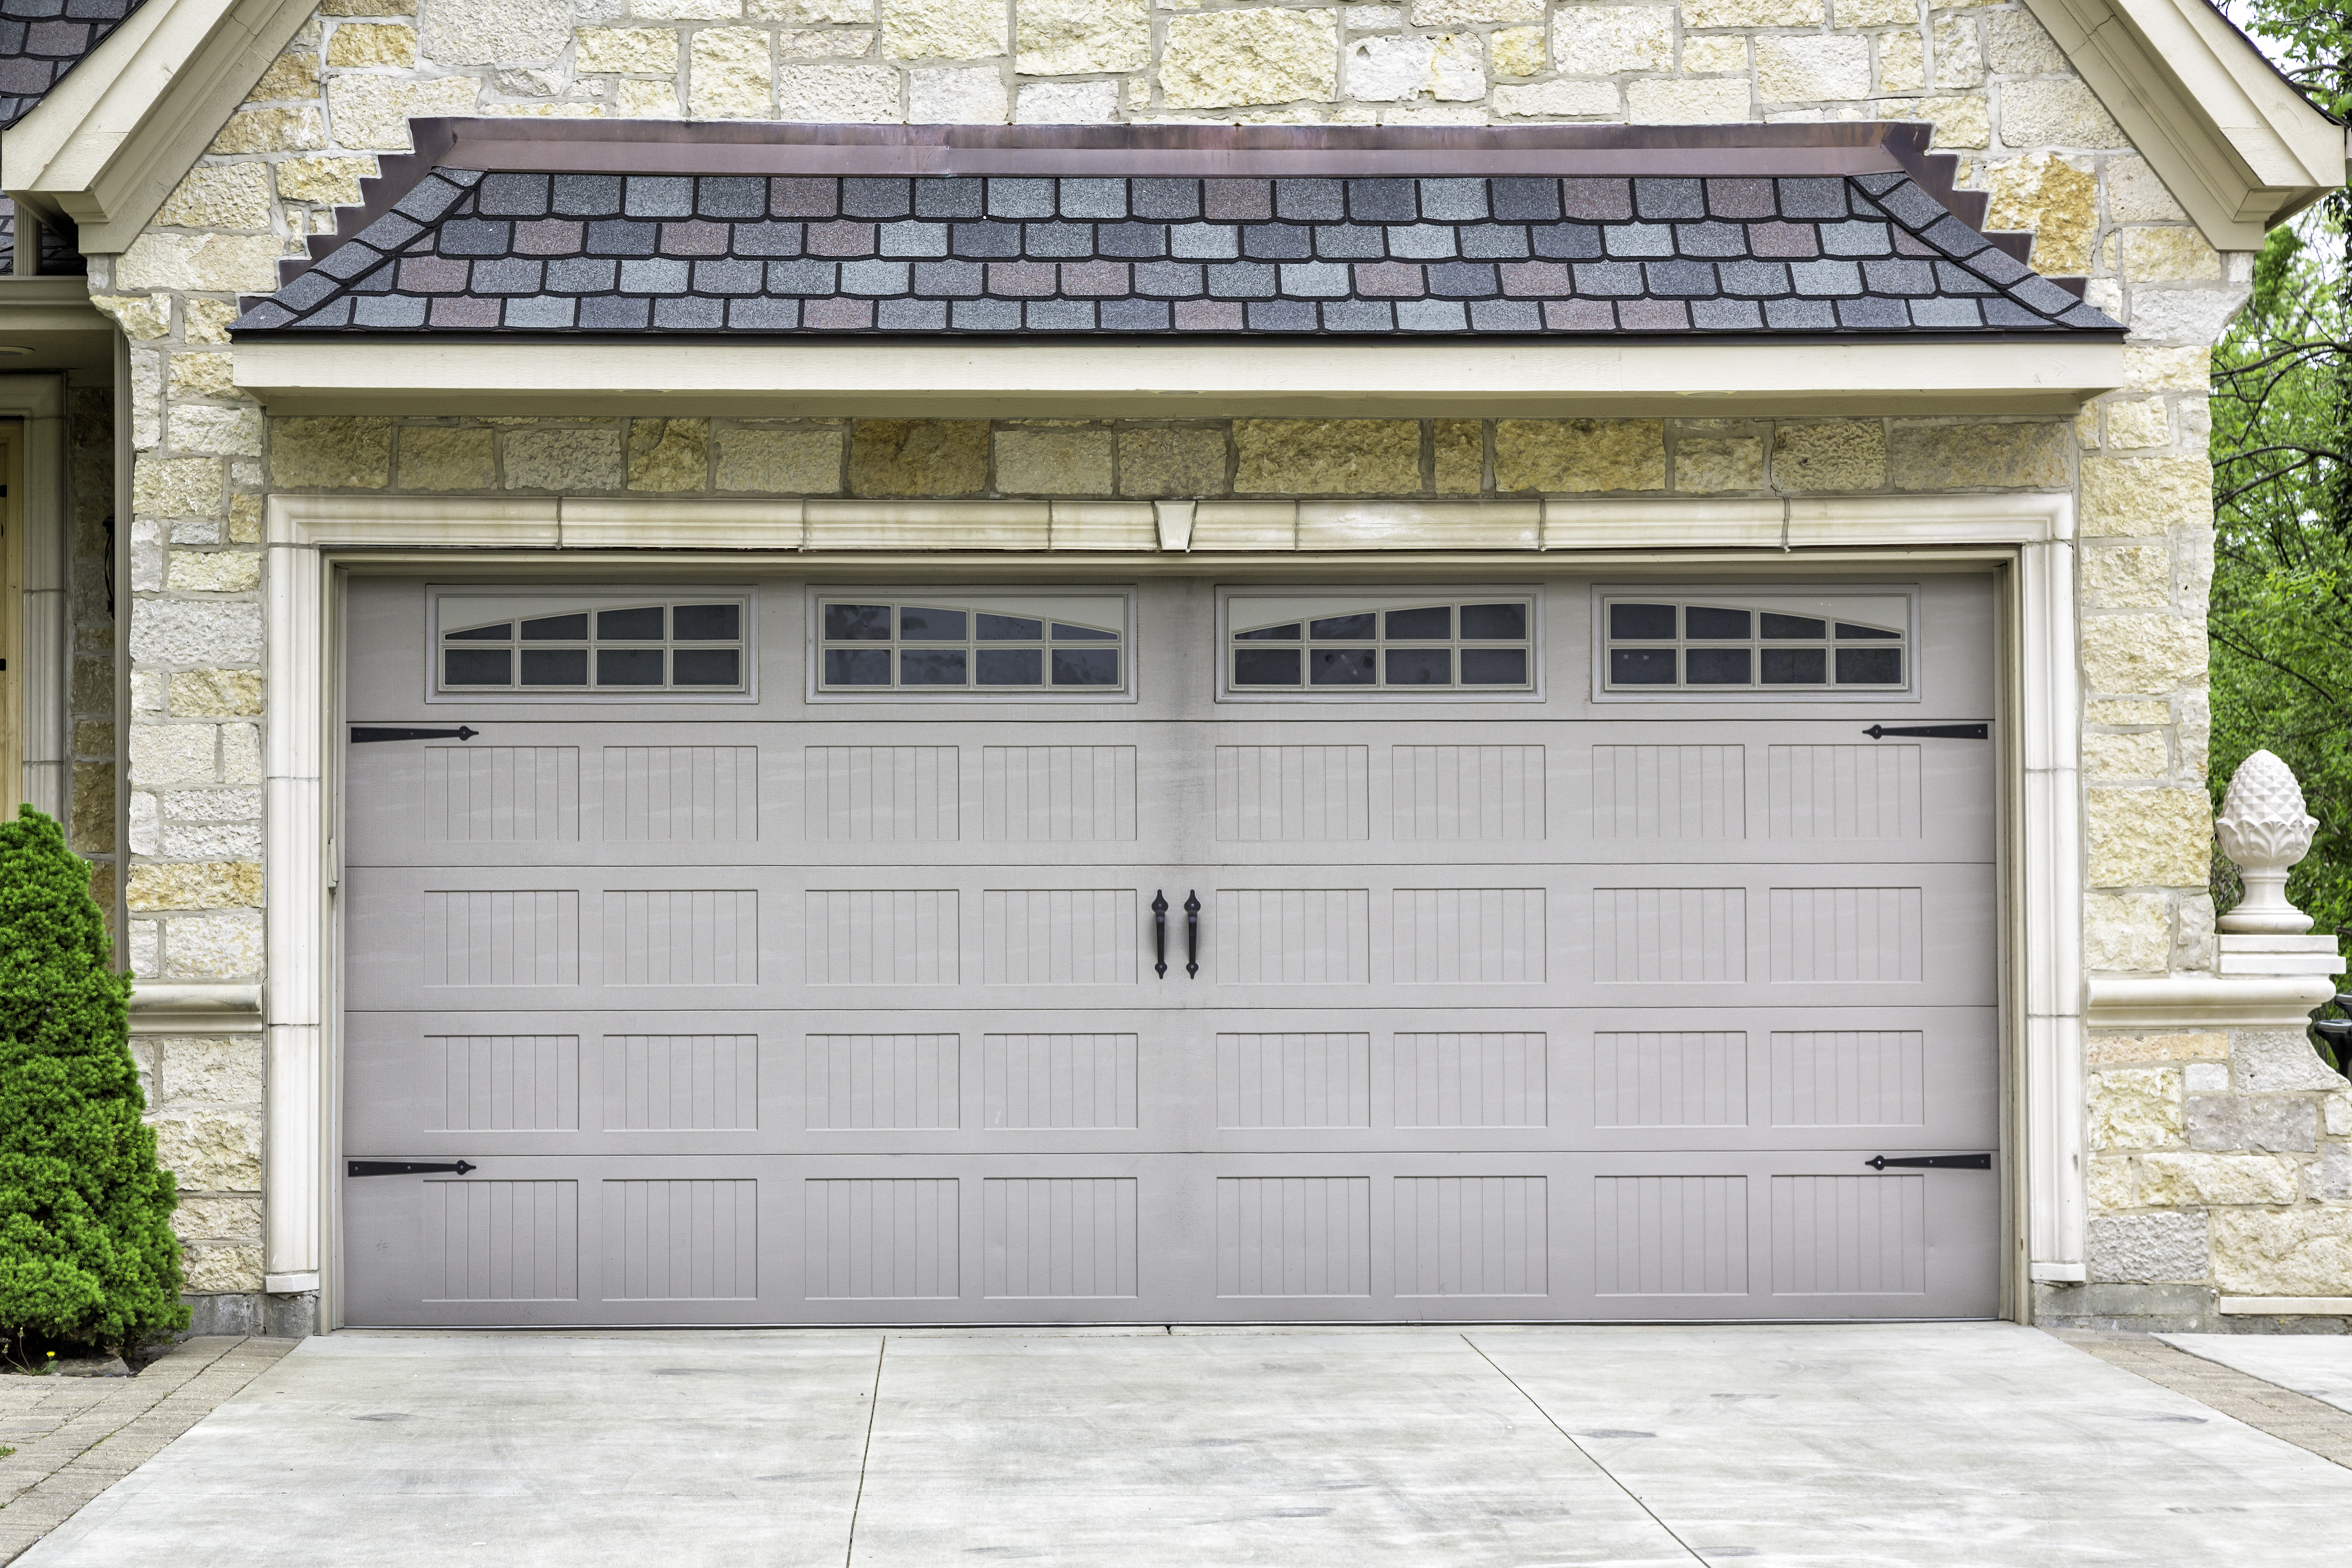 Garage Door Customization Packages  sc 1 st  TGS Garages \u0026 Doors & Garage Door Accents to Customize Your Home | TGS Garages \u0026 Doors